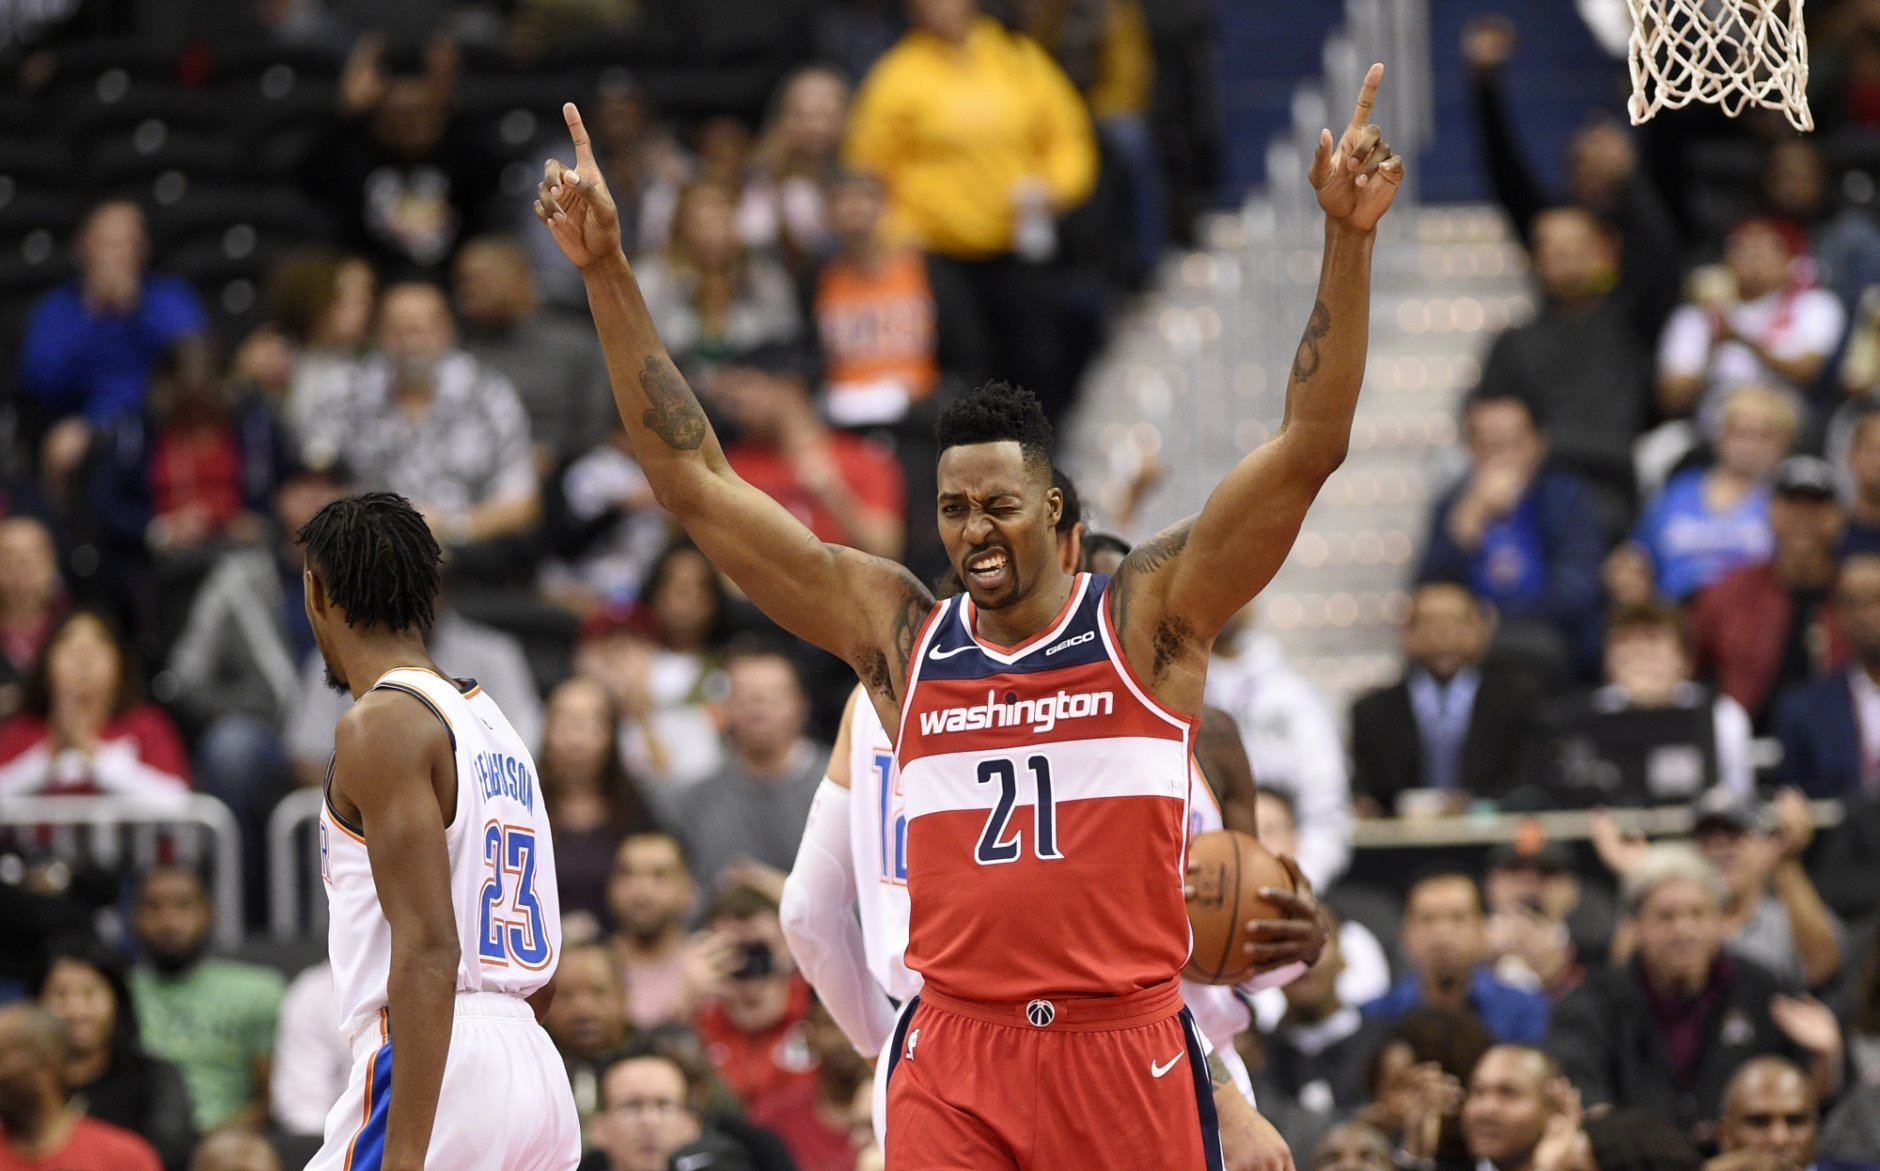 Washington Wizards center Dwight Howard (21) gestures after he dunked and was fouled during the first half of an NBA basketball game, as Oklahoma City Thunder guard Terrance Ferguson stands at left, Friday, Nov. 2, 2018, in Washington. (AP Photo/Nick Wass)